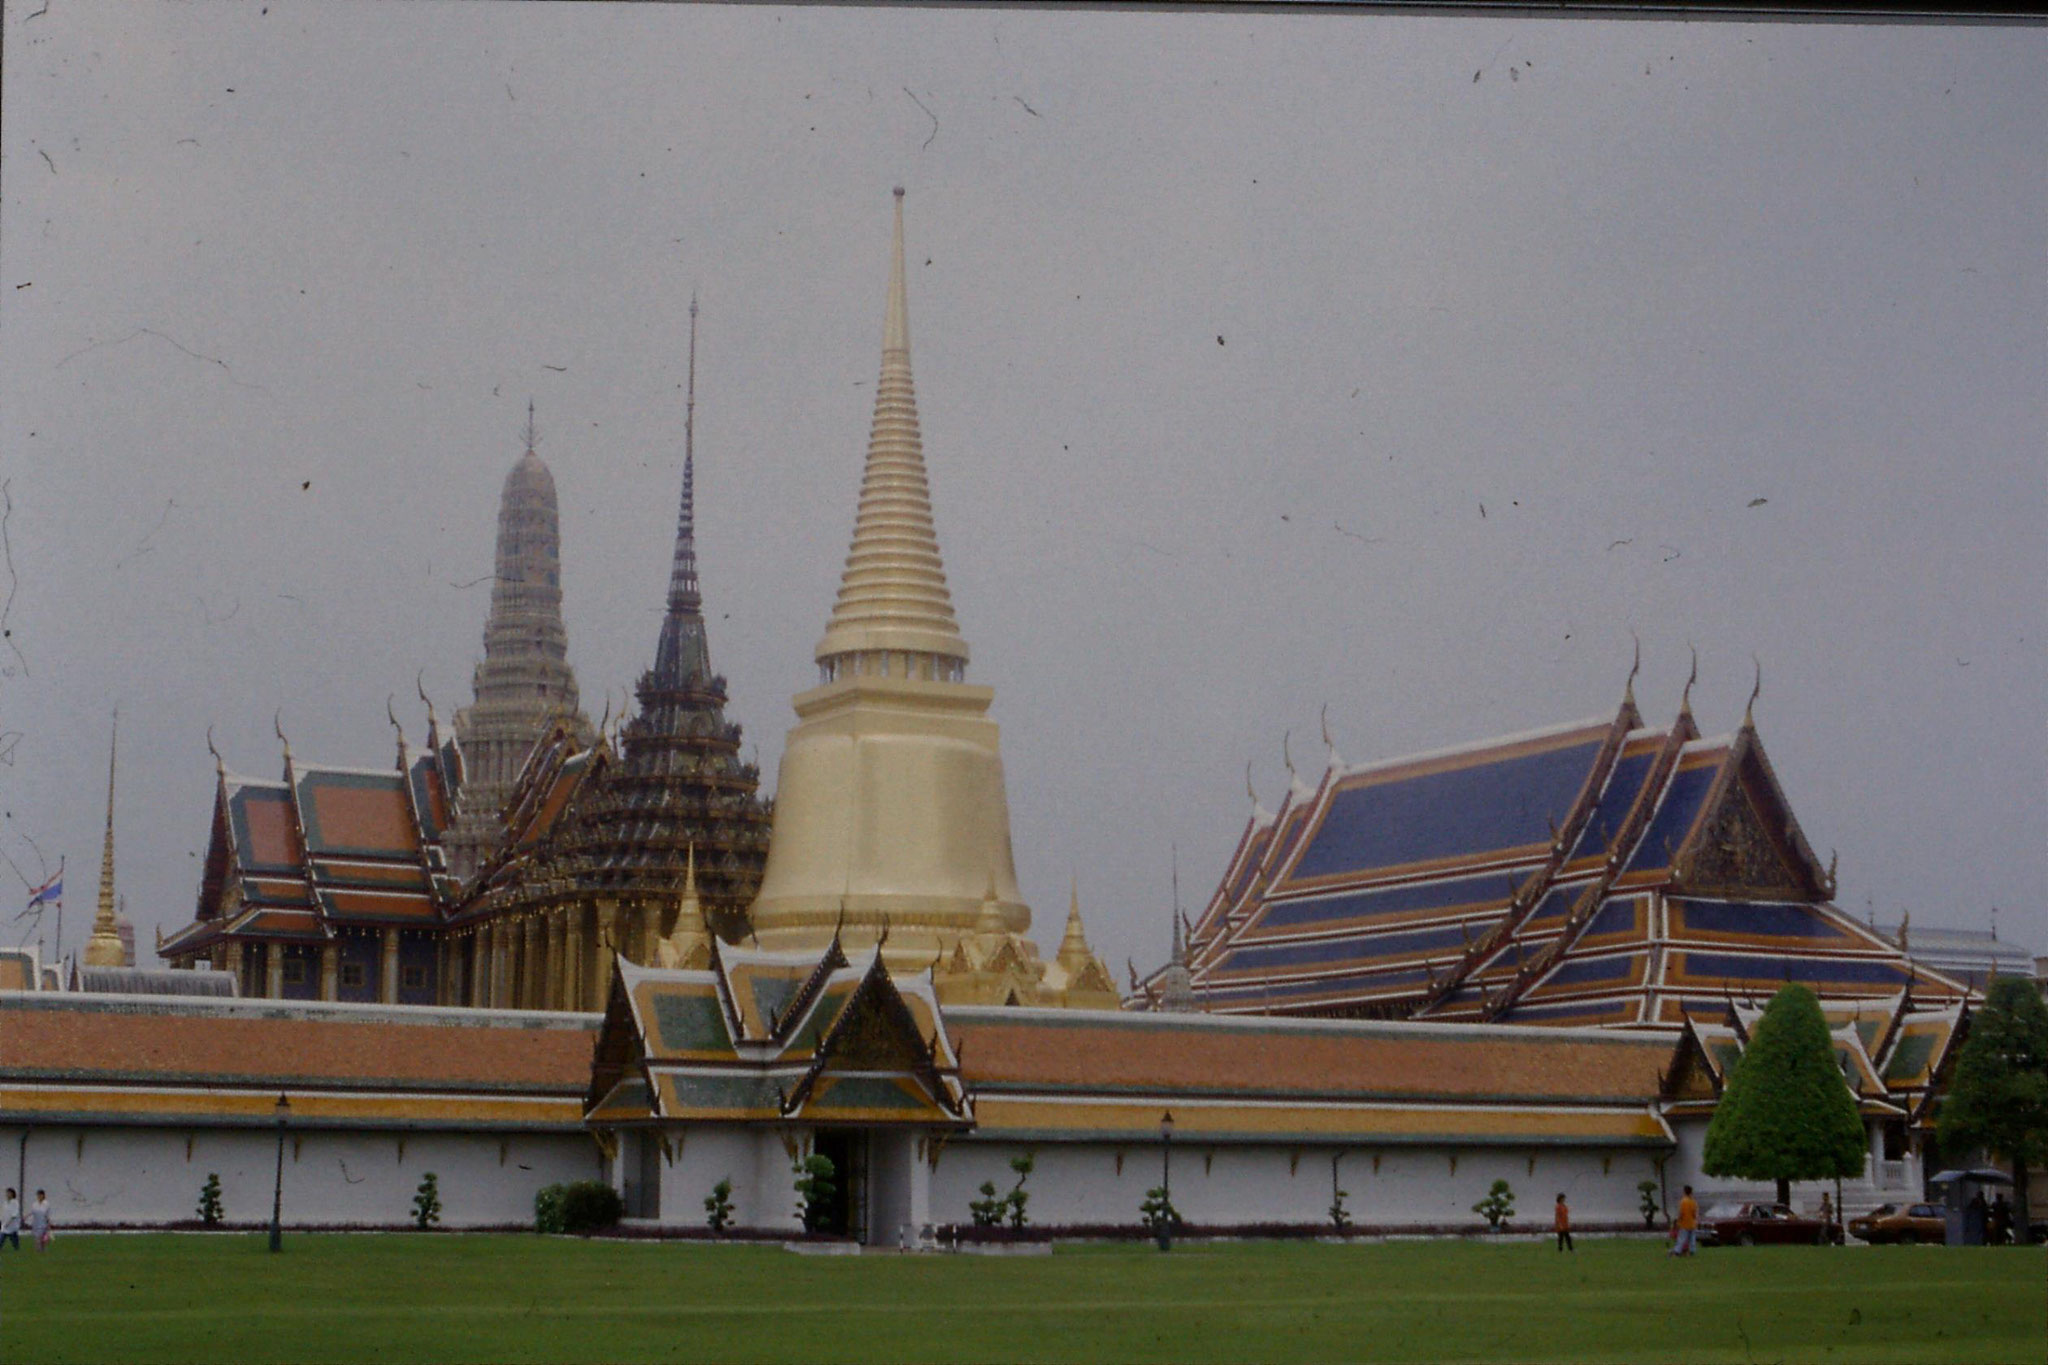 20/5/1990: 2: Bangkok Royal Palace